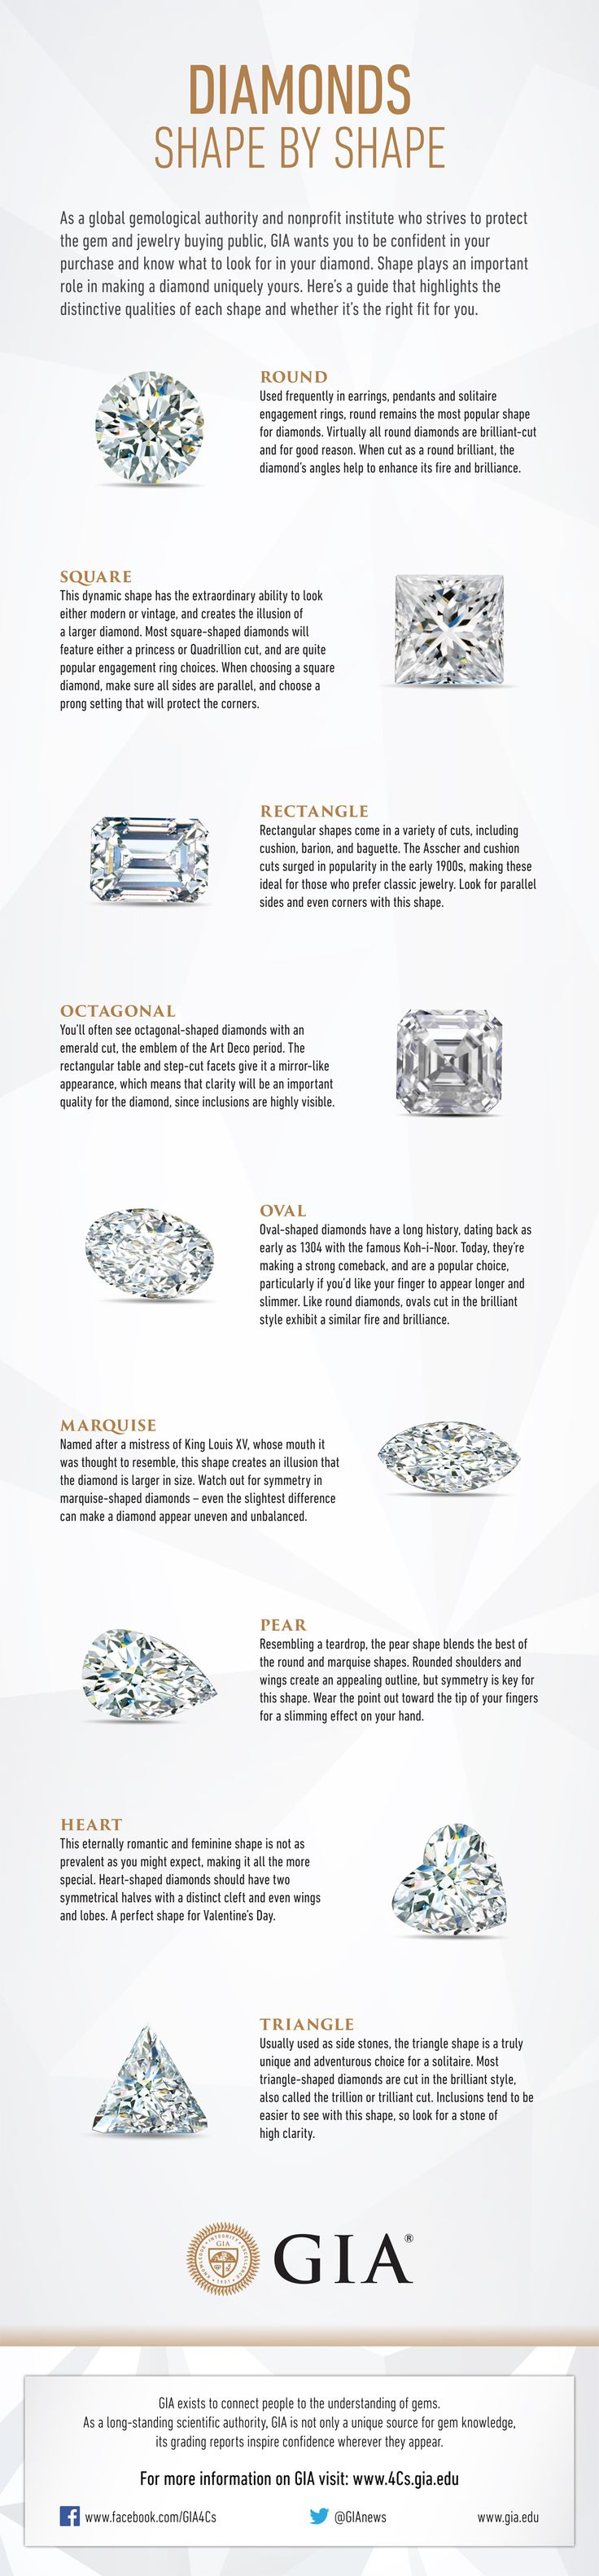 Read on for GIA's Diamond Shape buyers guide to some of the most frequently seen diamond shapes, and their defining attributes. Share with friends and family alike!